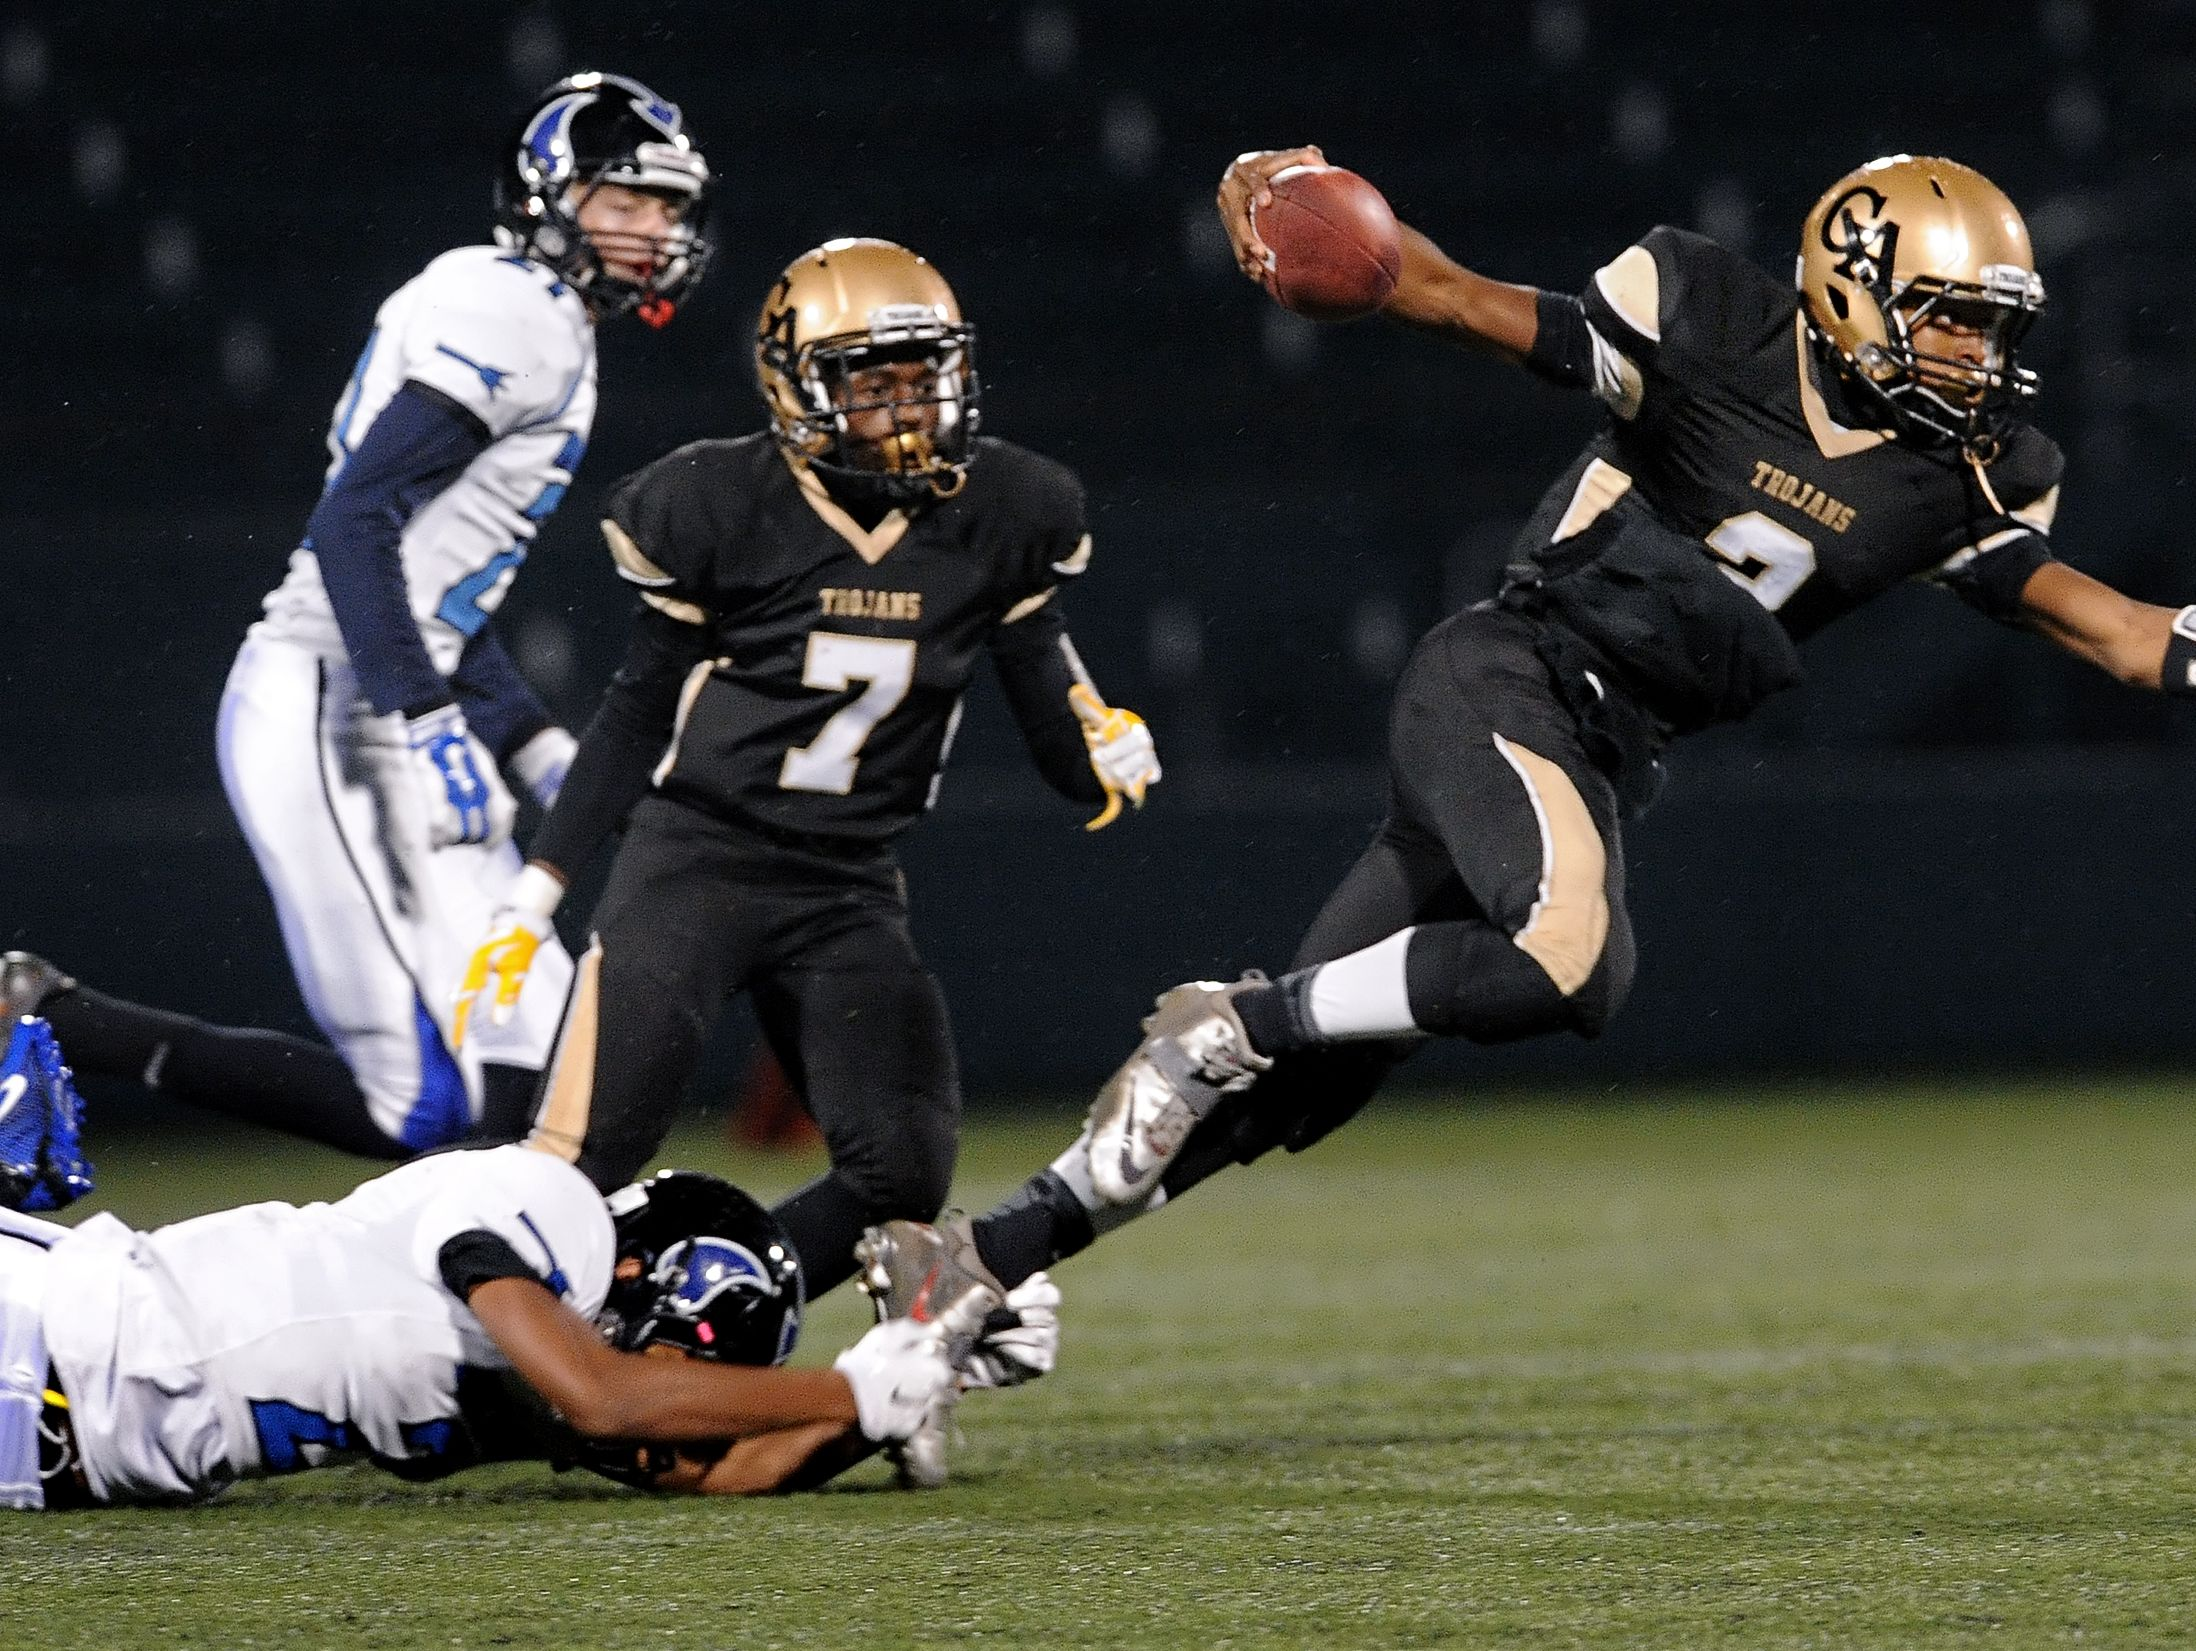 Greece Athena's Tavon Granison, right, is tripped up by Brockport's Rapeal Odey.